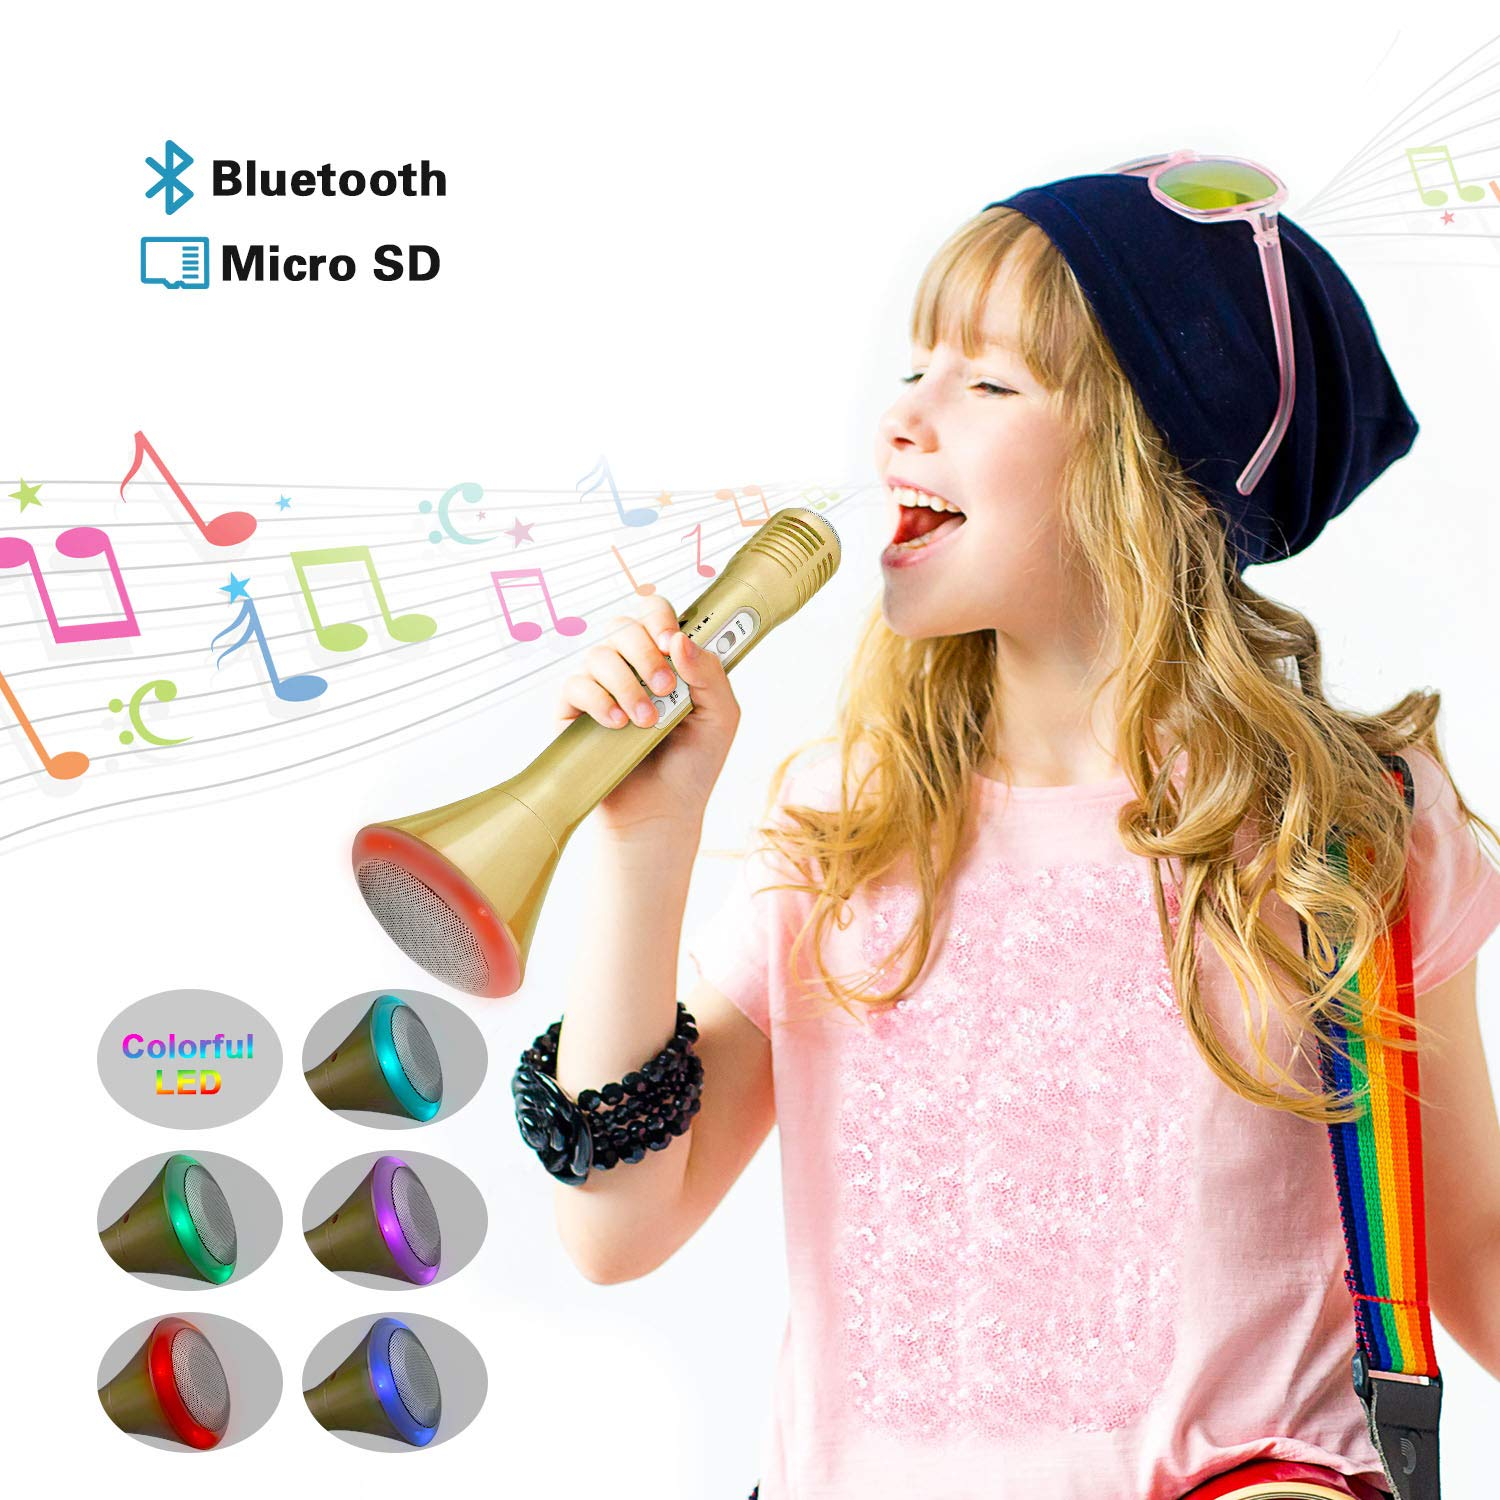 Fricon Birthday Gifts for Girls Age 3-12, Karaoke Machine for Girls Gifts for 3-12 Year Old Wireless Microphone System Bluetooth Microphone Karaoke Machine for Girls Age 3-12 Gold KMUSKM01 by Fricon (Image #1)